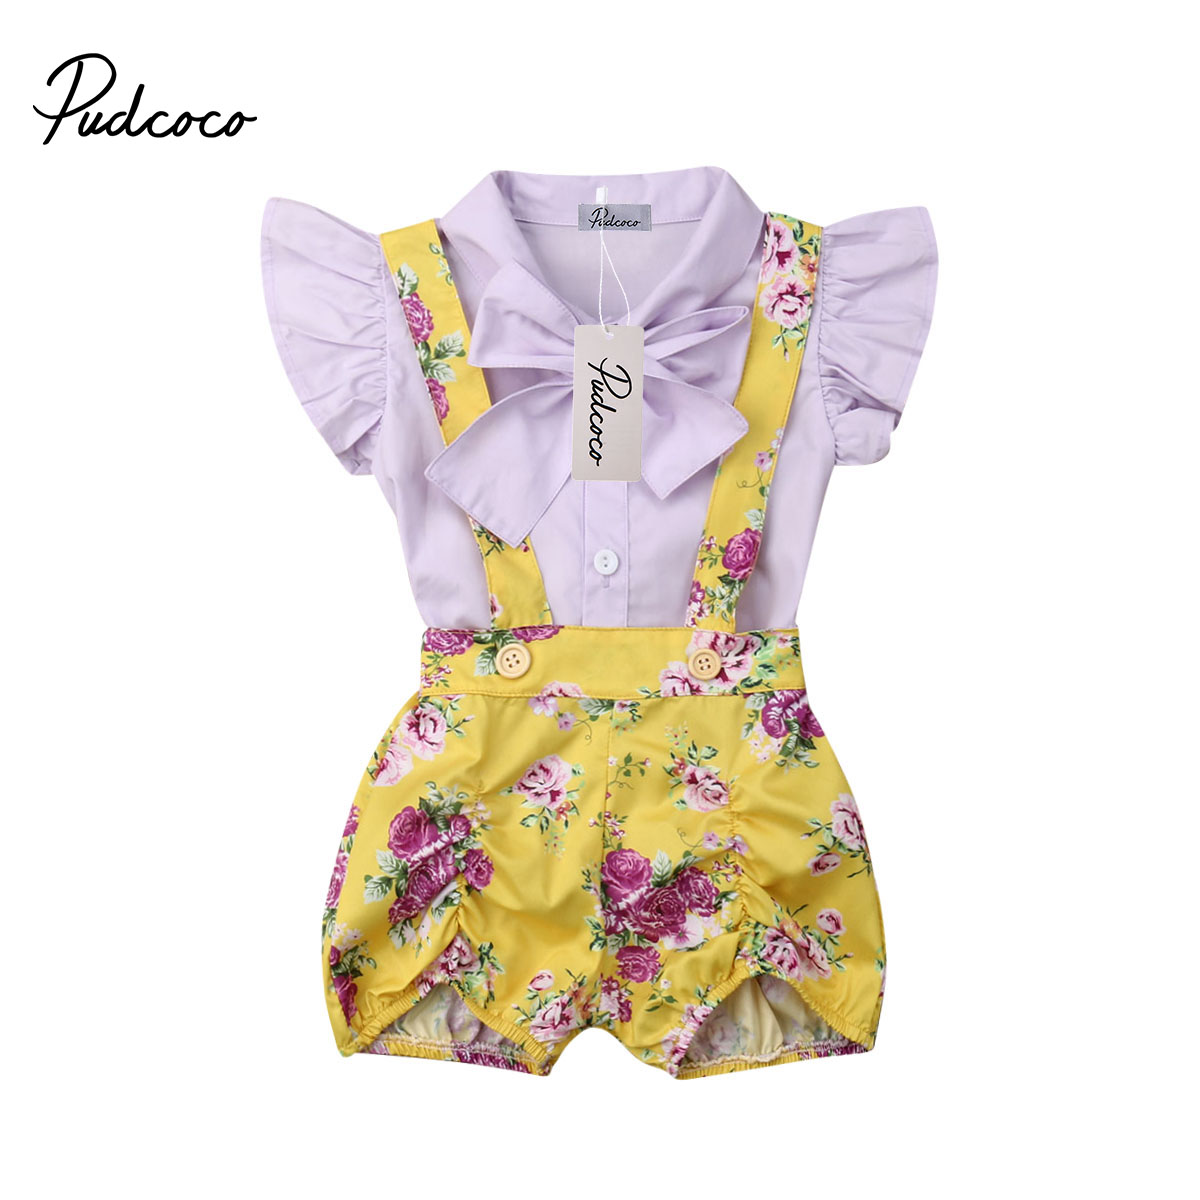 2019 Brand kid Casual Clothing Set Cotton 2Pcs Baby Toddler Girls Kids Overalls Shorts +Bow Fly Sleeve T-shirt Clothes Outfits2019 Brand kid Casual Clothing Set Cotton 2Pcs Baby Toddler Girls Kids Overalls Shorts +Bow Fly Sleeve T-shirt Clothes Outfits